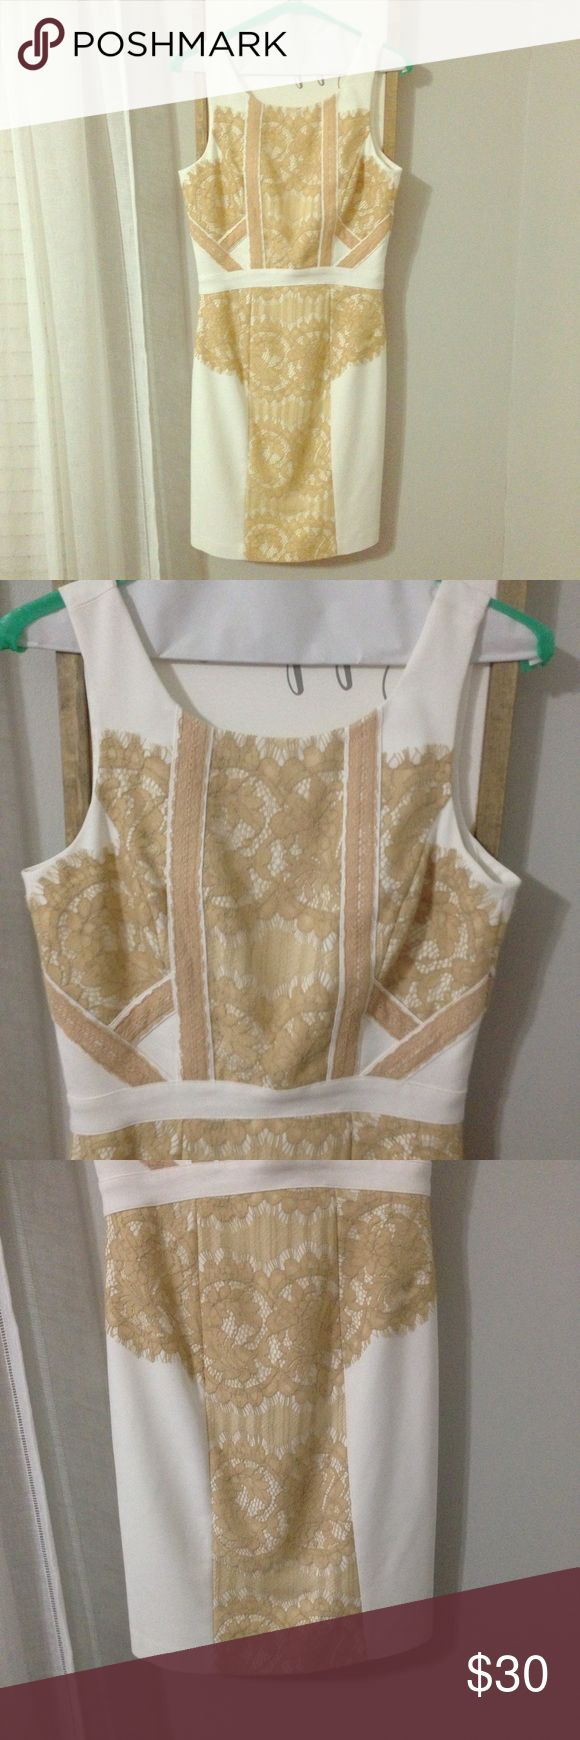 Gianni bini fitted white and tan lace dress size 2 Fitted white dress with tan lace detailing. Gianni Bini. Only worn once for my bridal shower. Has been dry cleaned. Size 2 Gianni Bini Dresses